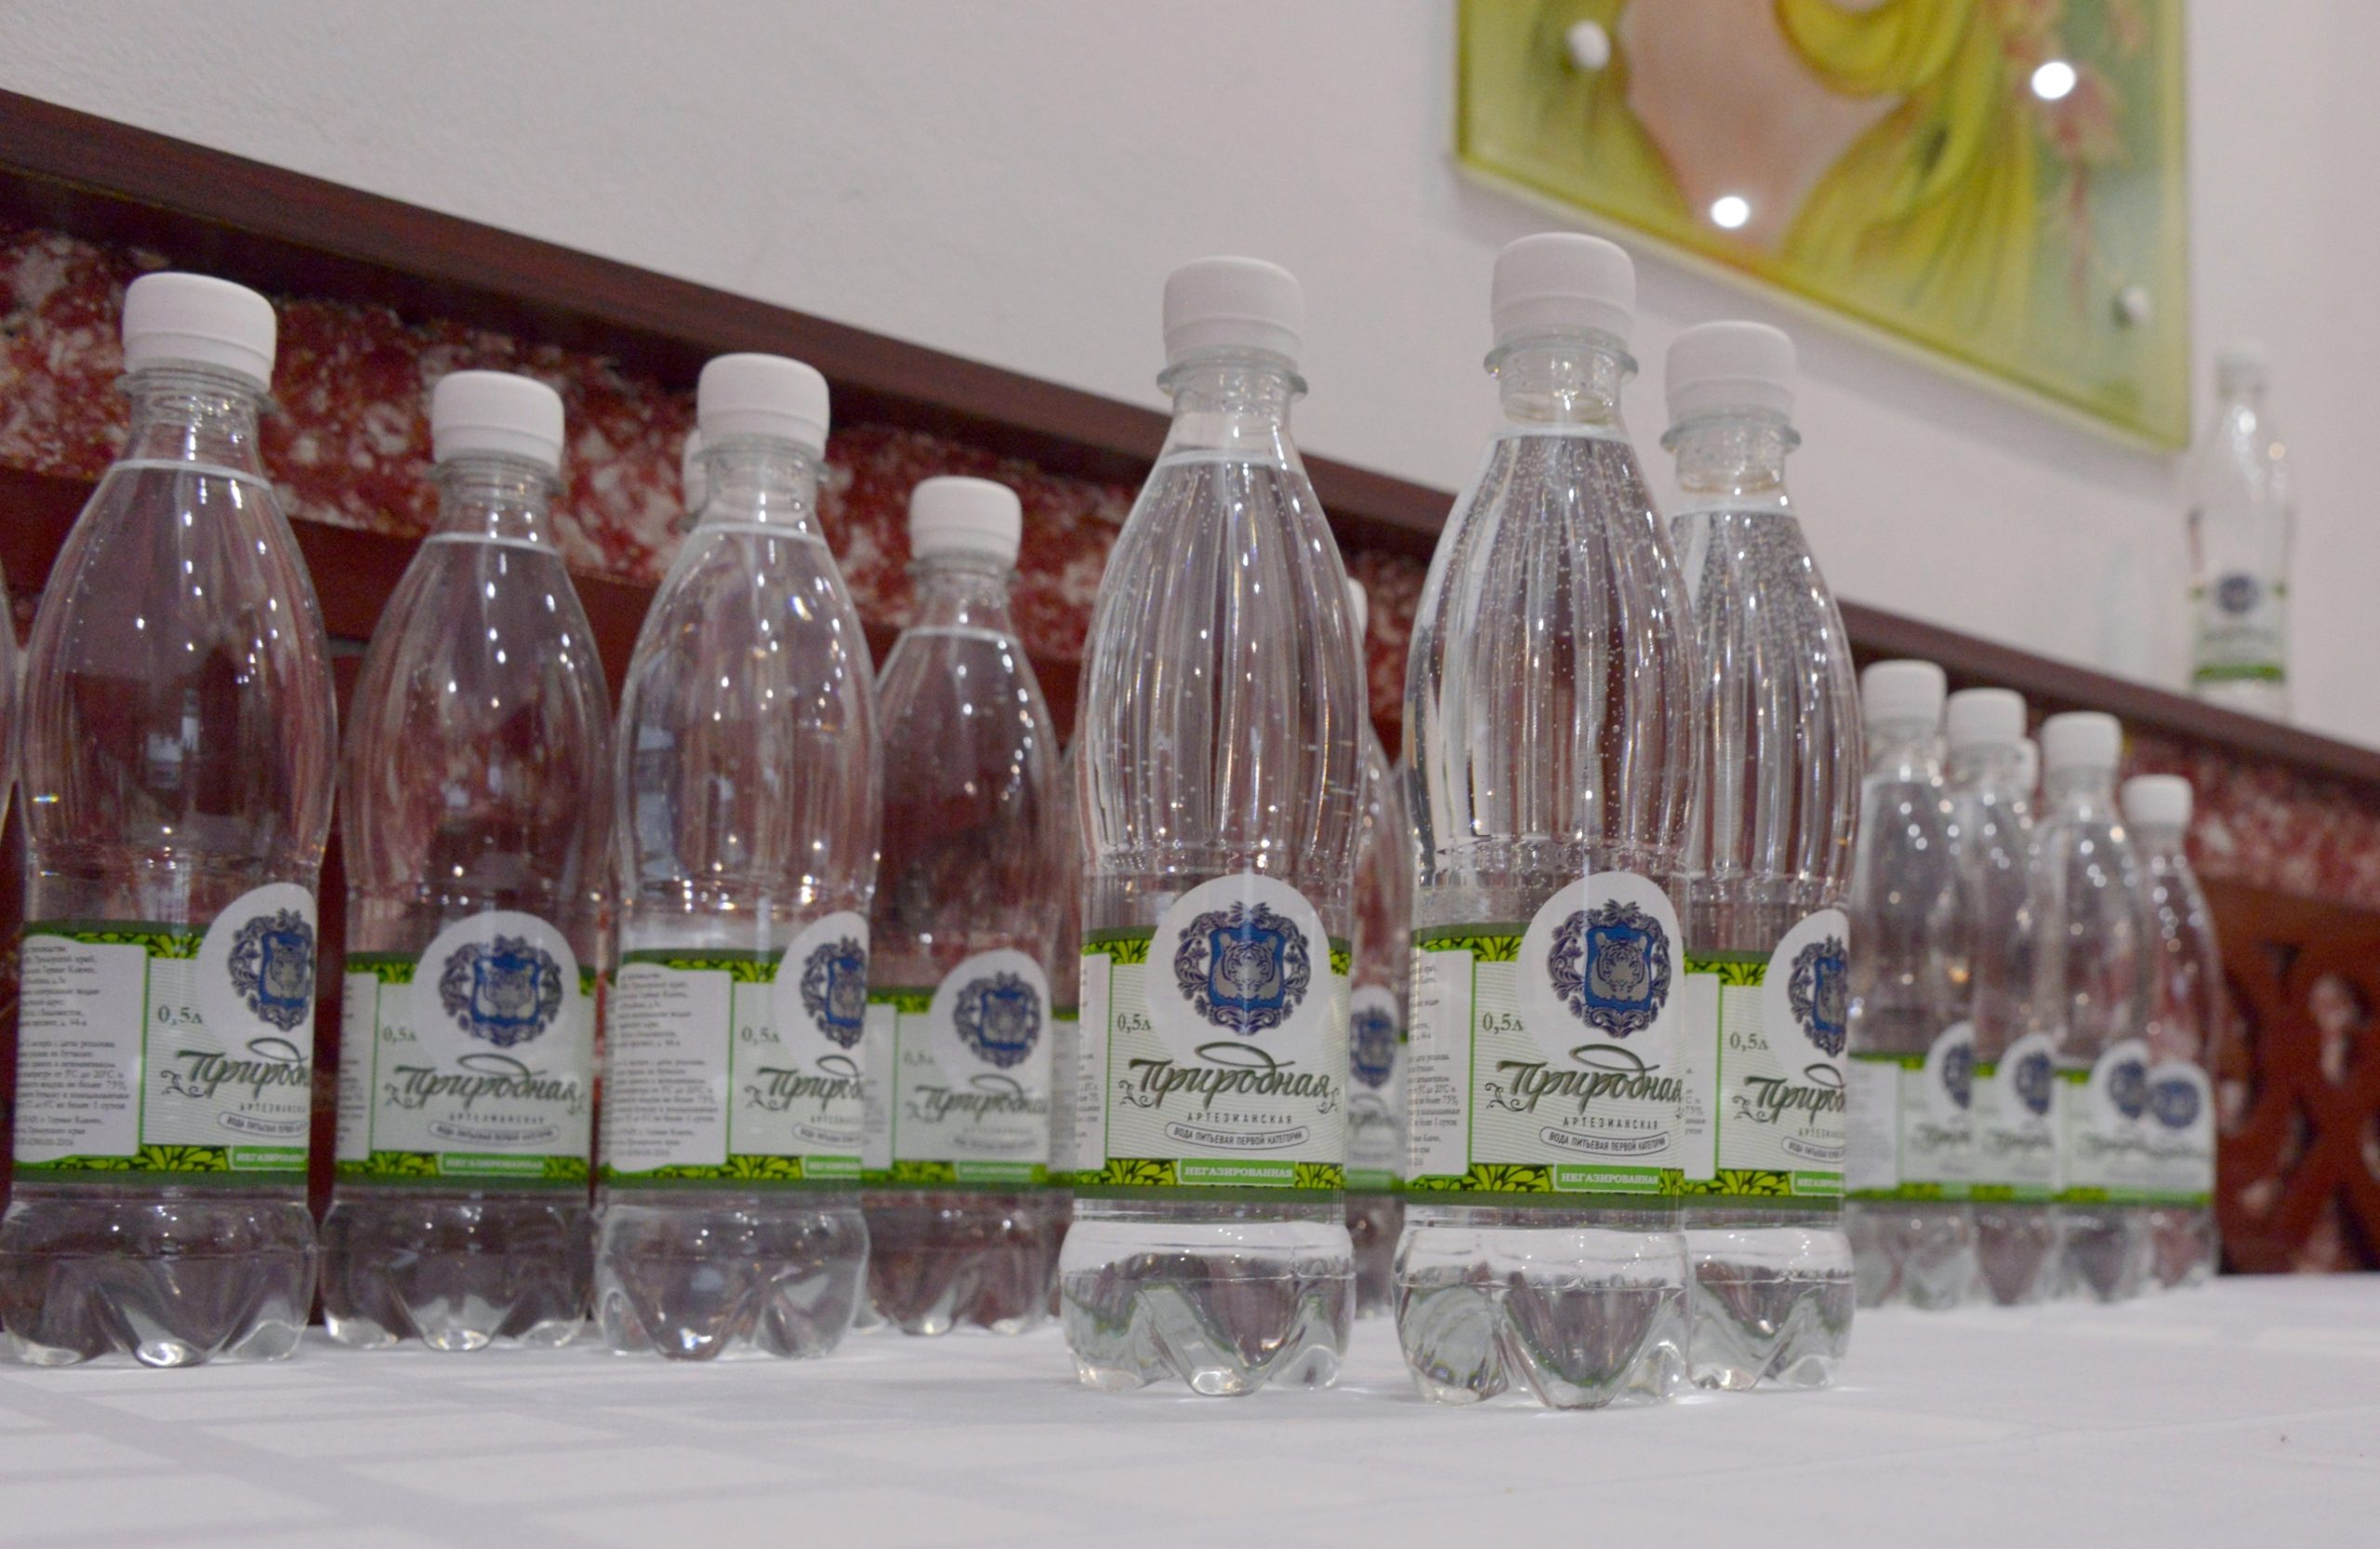 """Conference guests were treated with """"Prirodnaya"""" artesian water"""